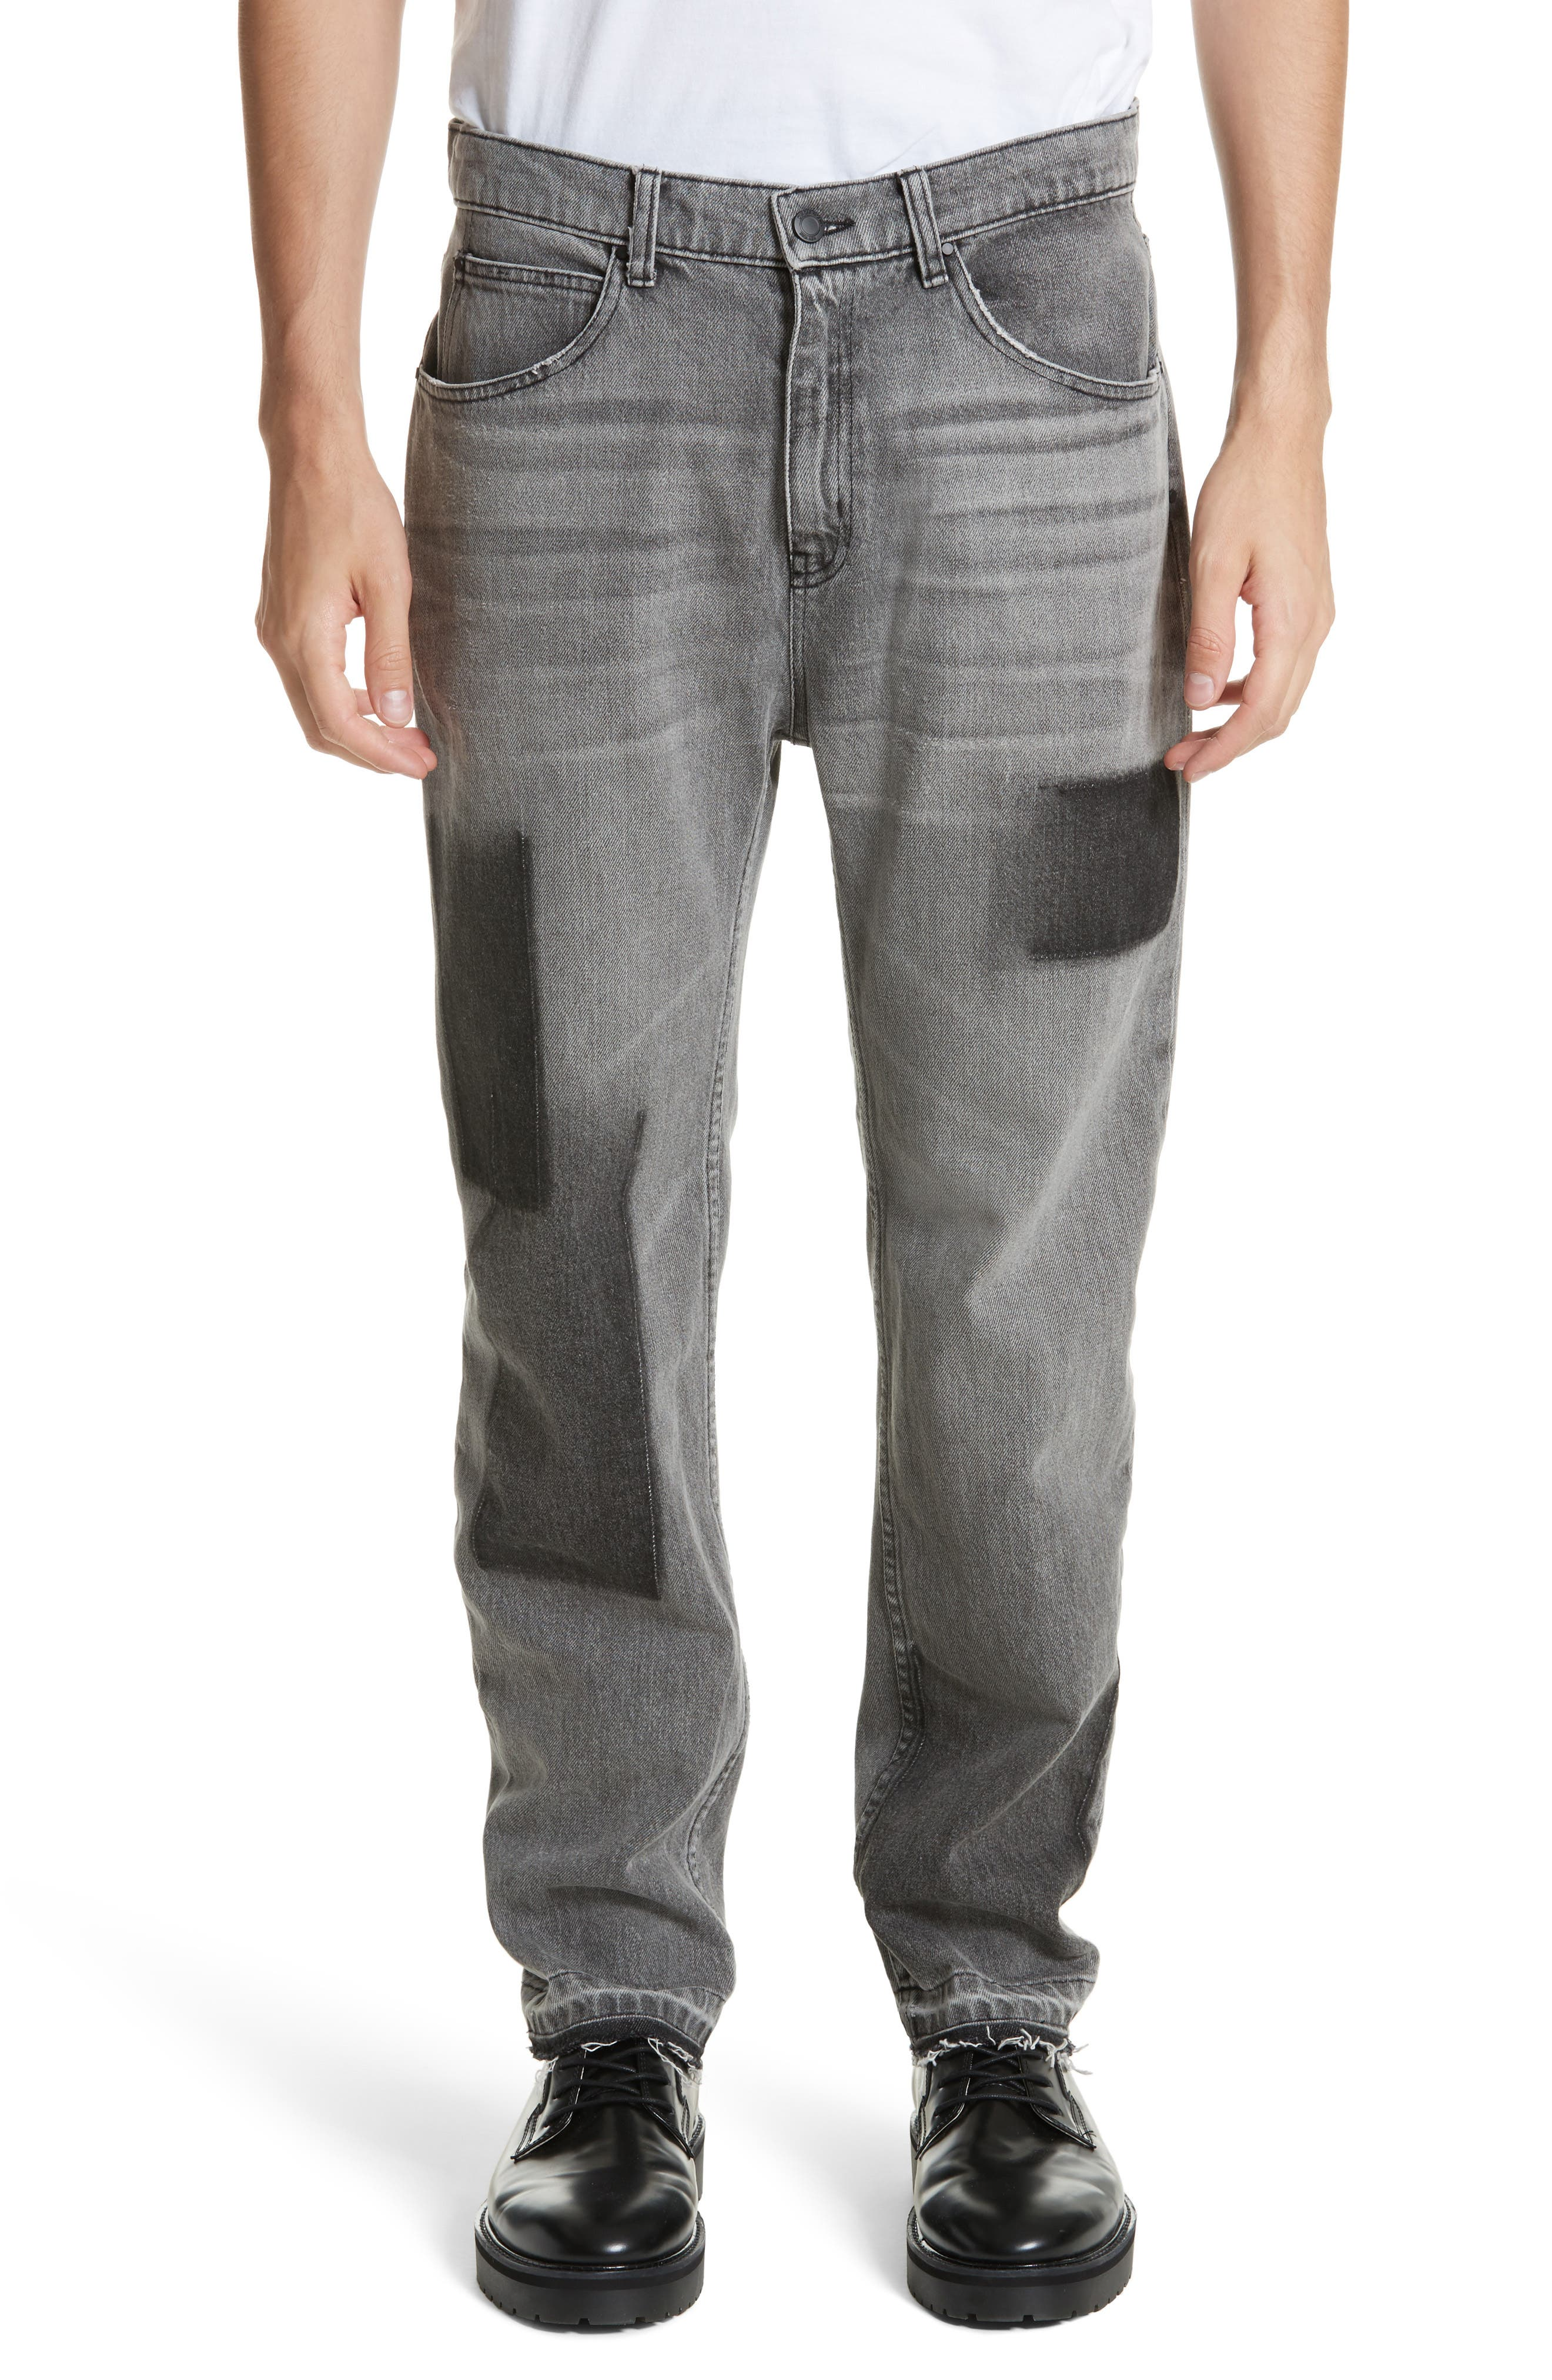 Alternate Image 1 Selected - OVADIA & SONS OS-2 Straight Leg Jeans